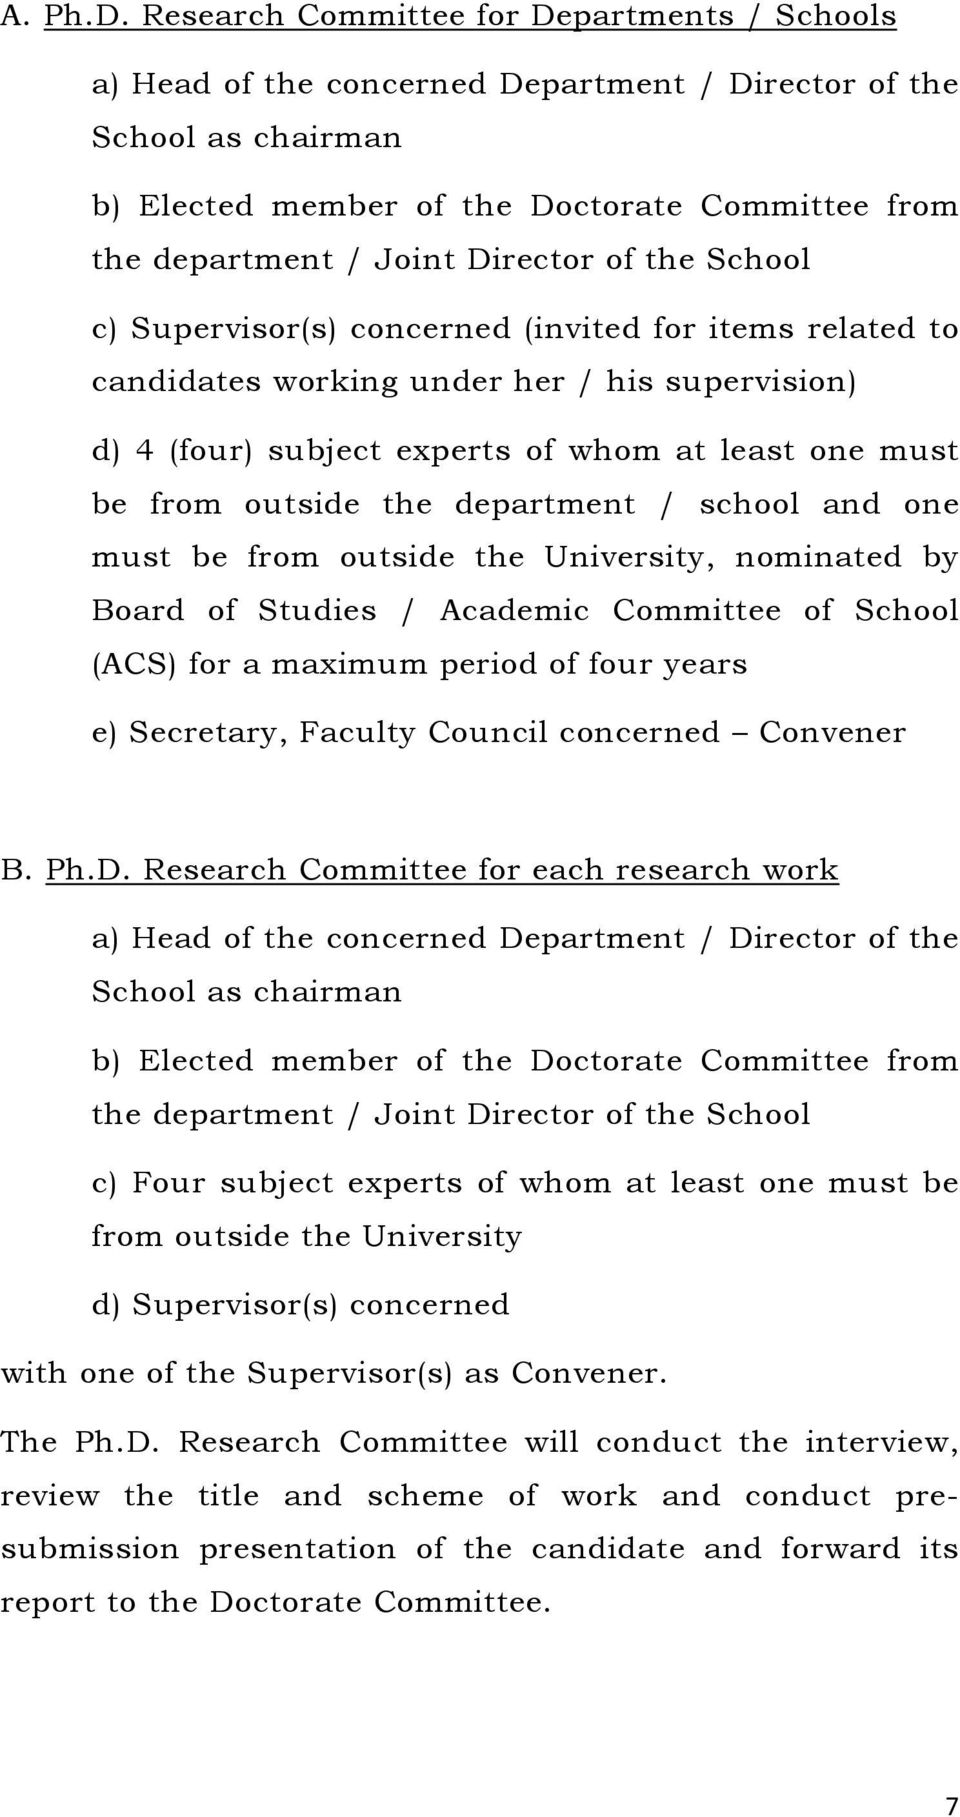 of the School c) Supervisor(s) concerned (invited for items related to candidates working under her / his supervision) d) 4 (four) subject experts of whom at least one must be from outside the